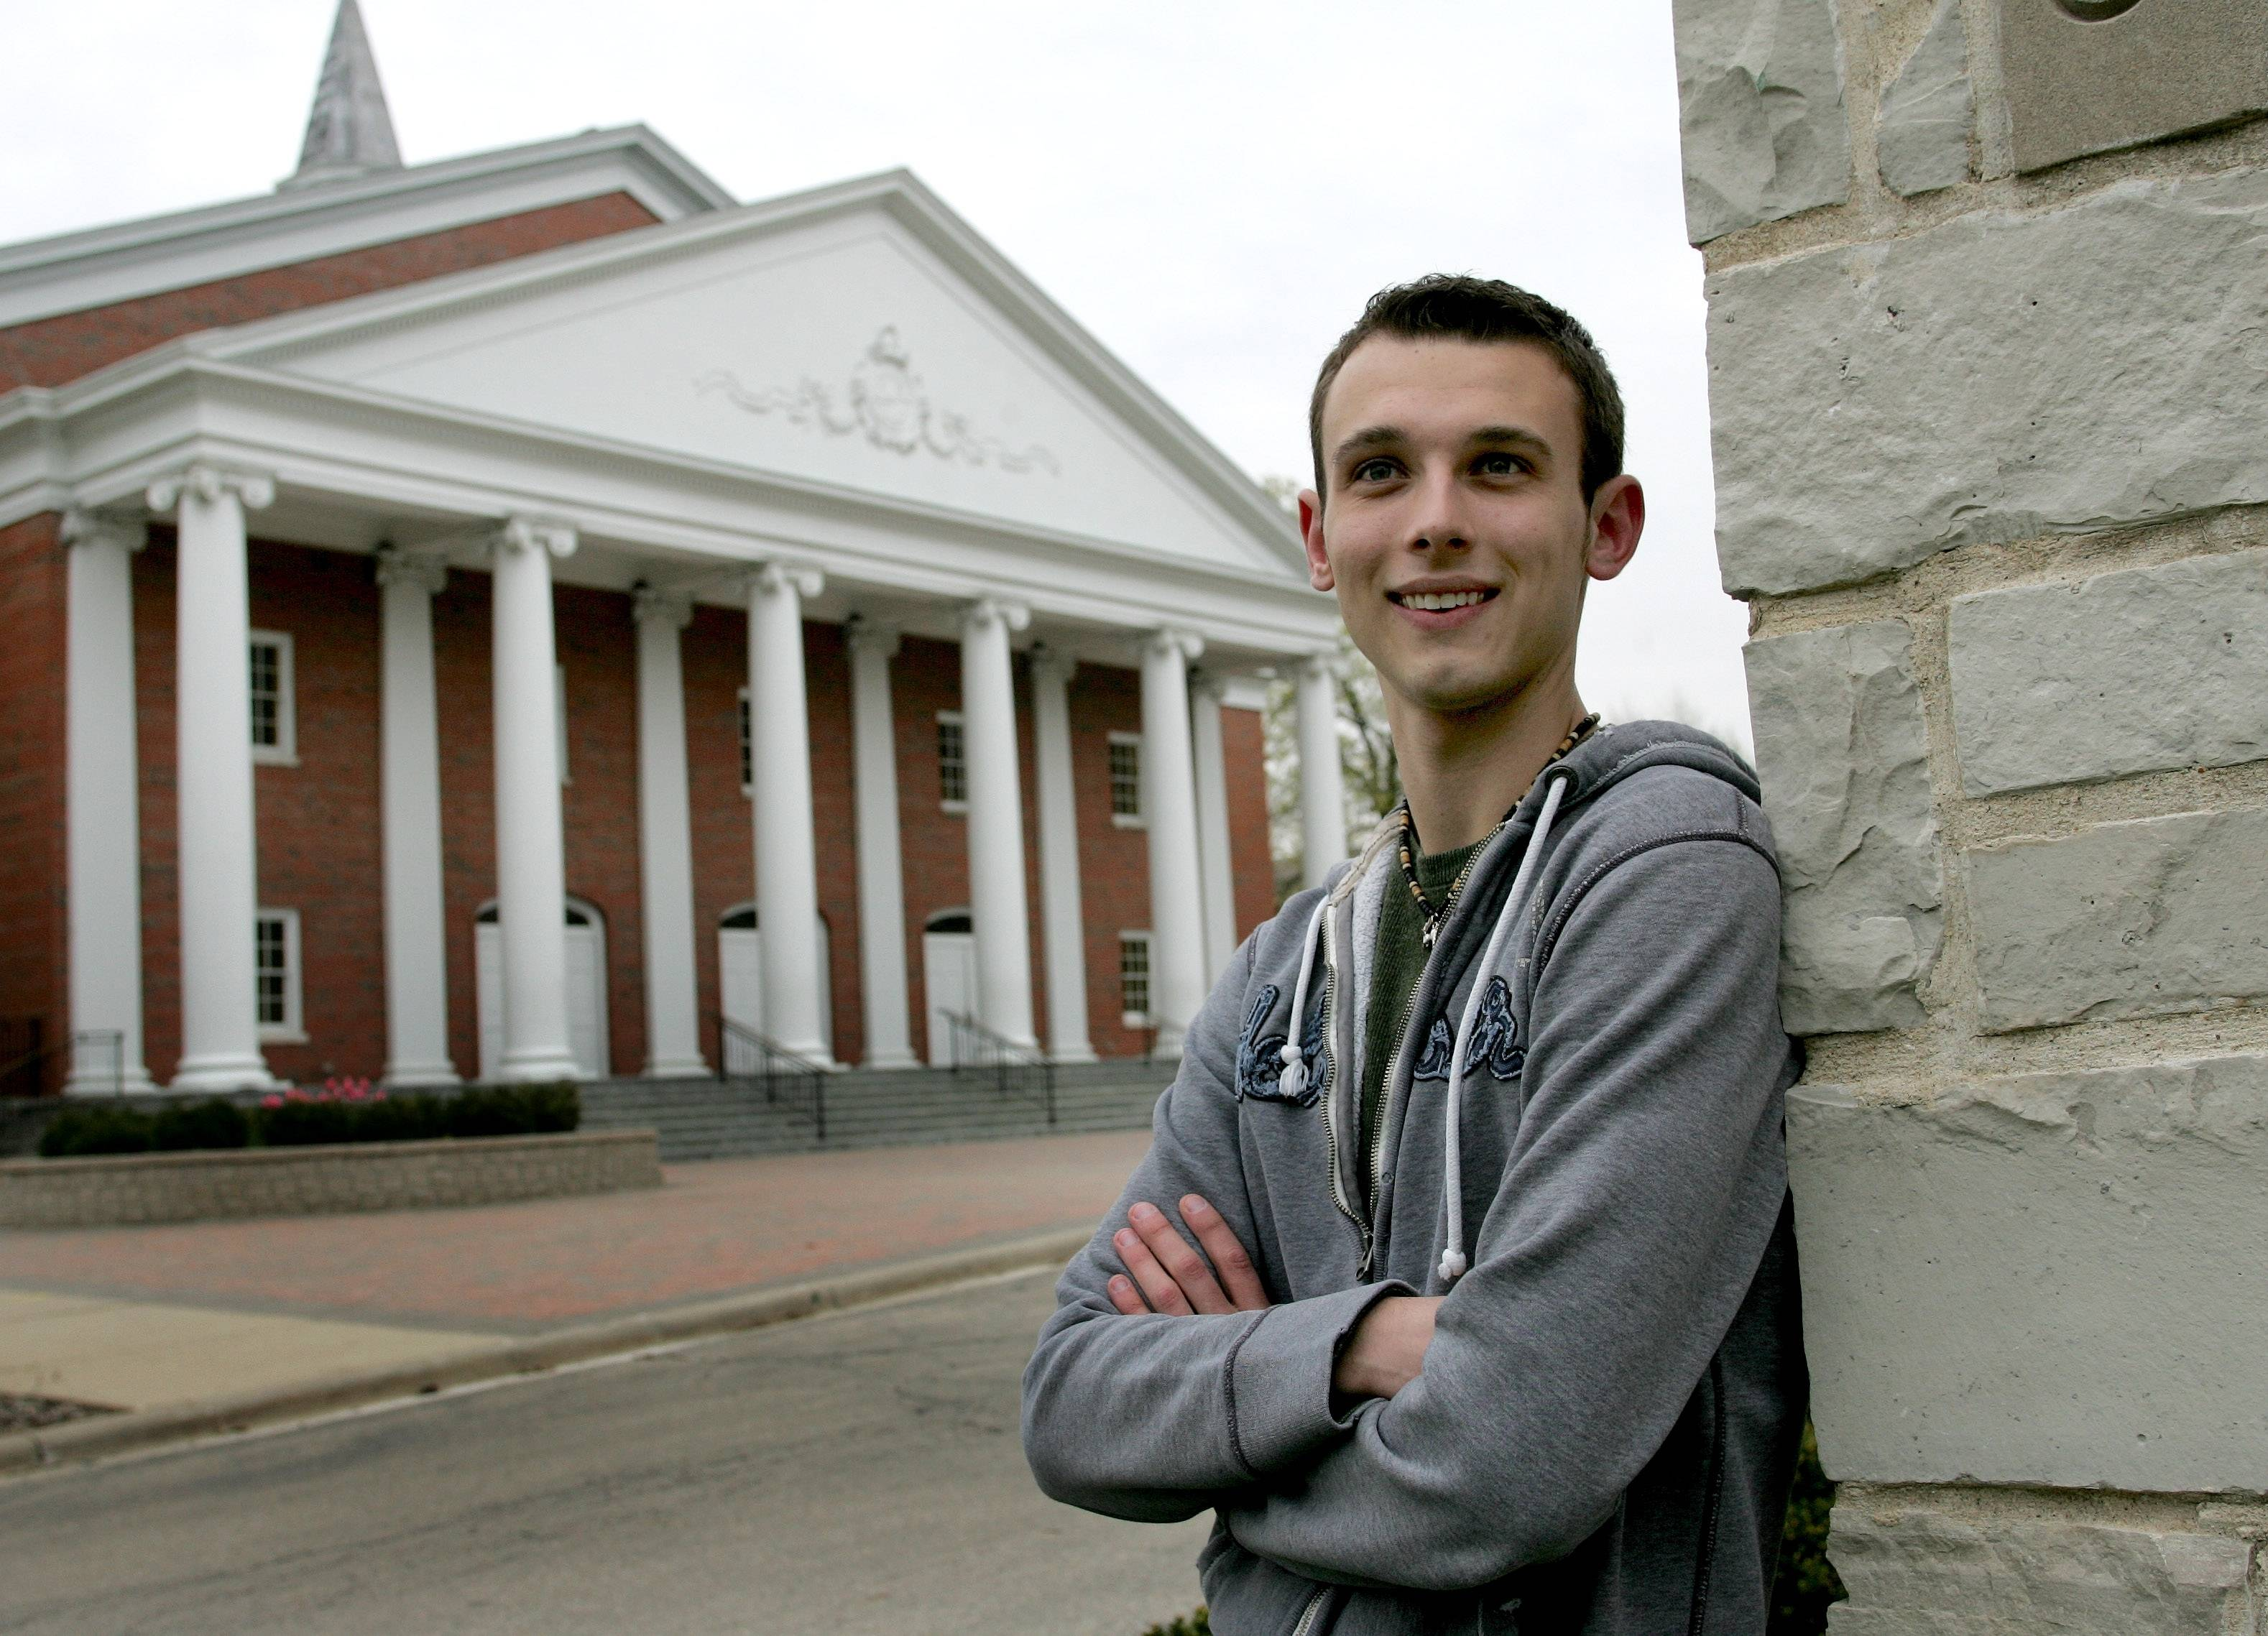 Zach Labutta thought his days at Wheaton College were over when he left the devoutly Christian school in the fall of 2009 after his sophomore year.